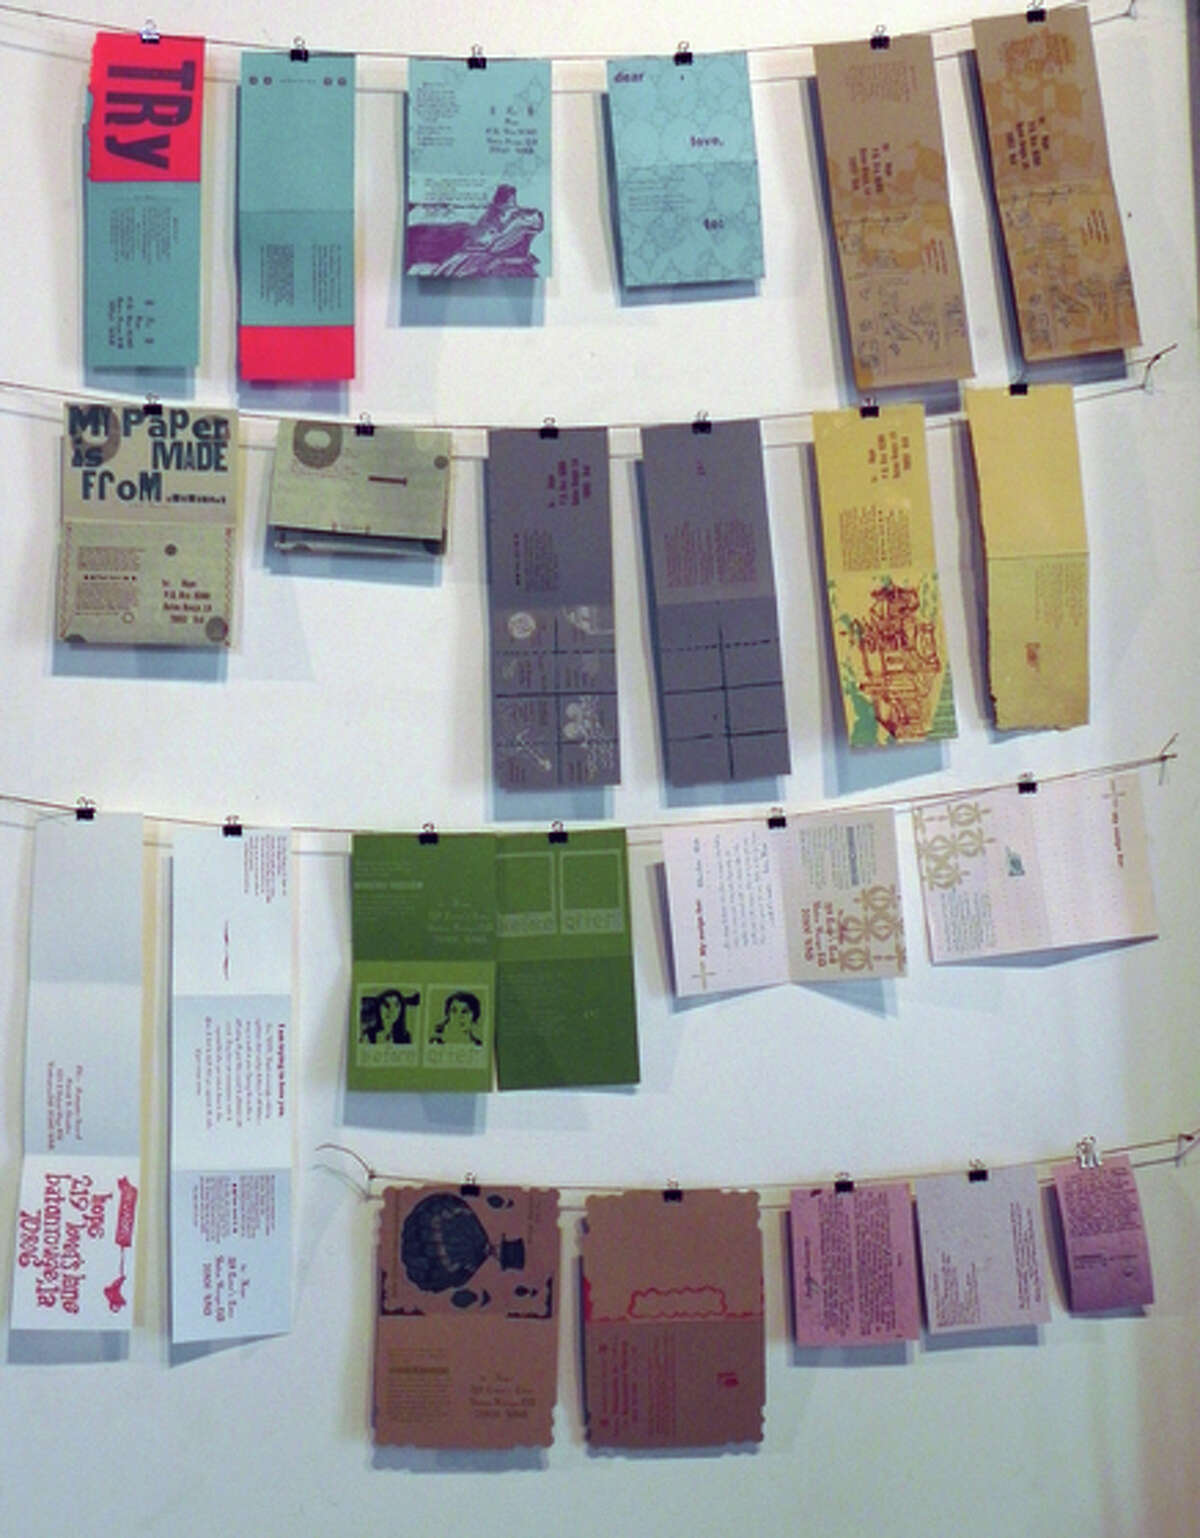 A Wall of Early postcards: Hope Amico trusts that the artistic message will arrive.